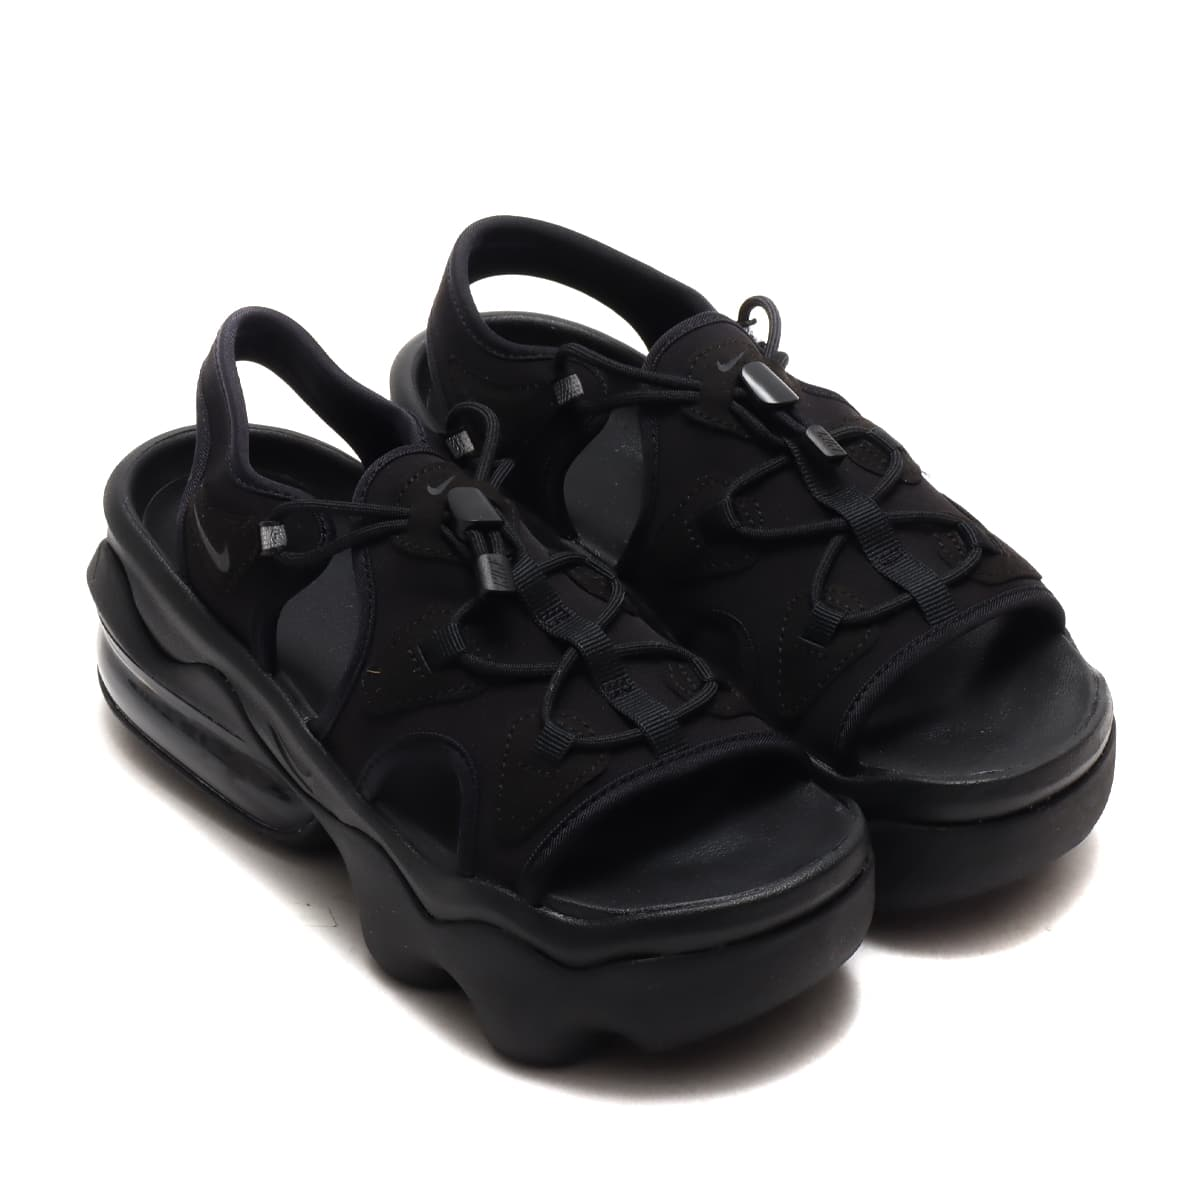 NIKE WMNS AIR MAX KOKO SANDAL BLACK/BLACK-ANTHRACITE 20SU-S_photo_large